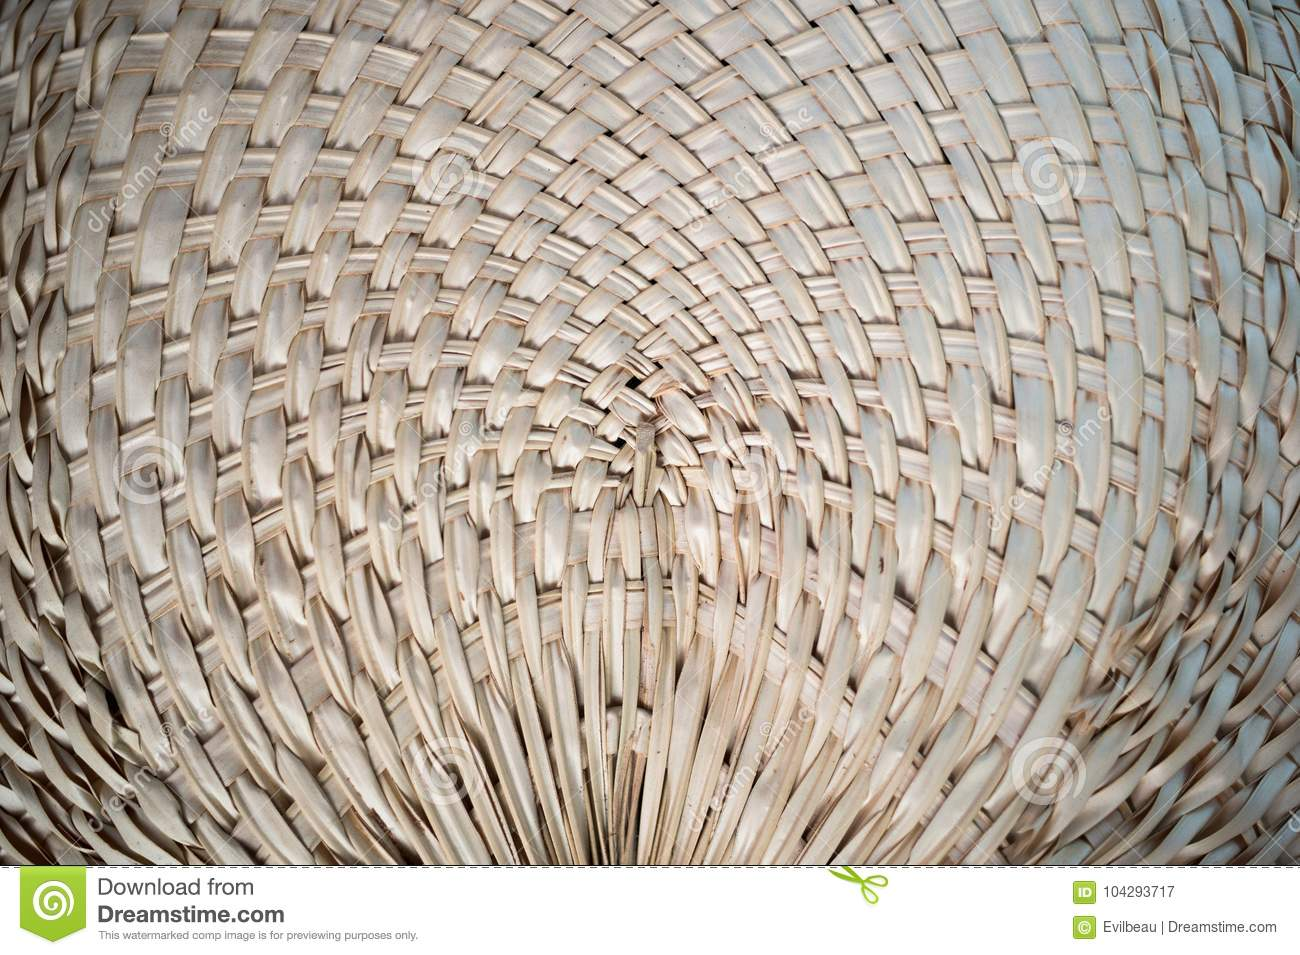 Bamboo Weaving Patterns